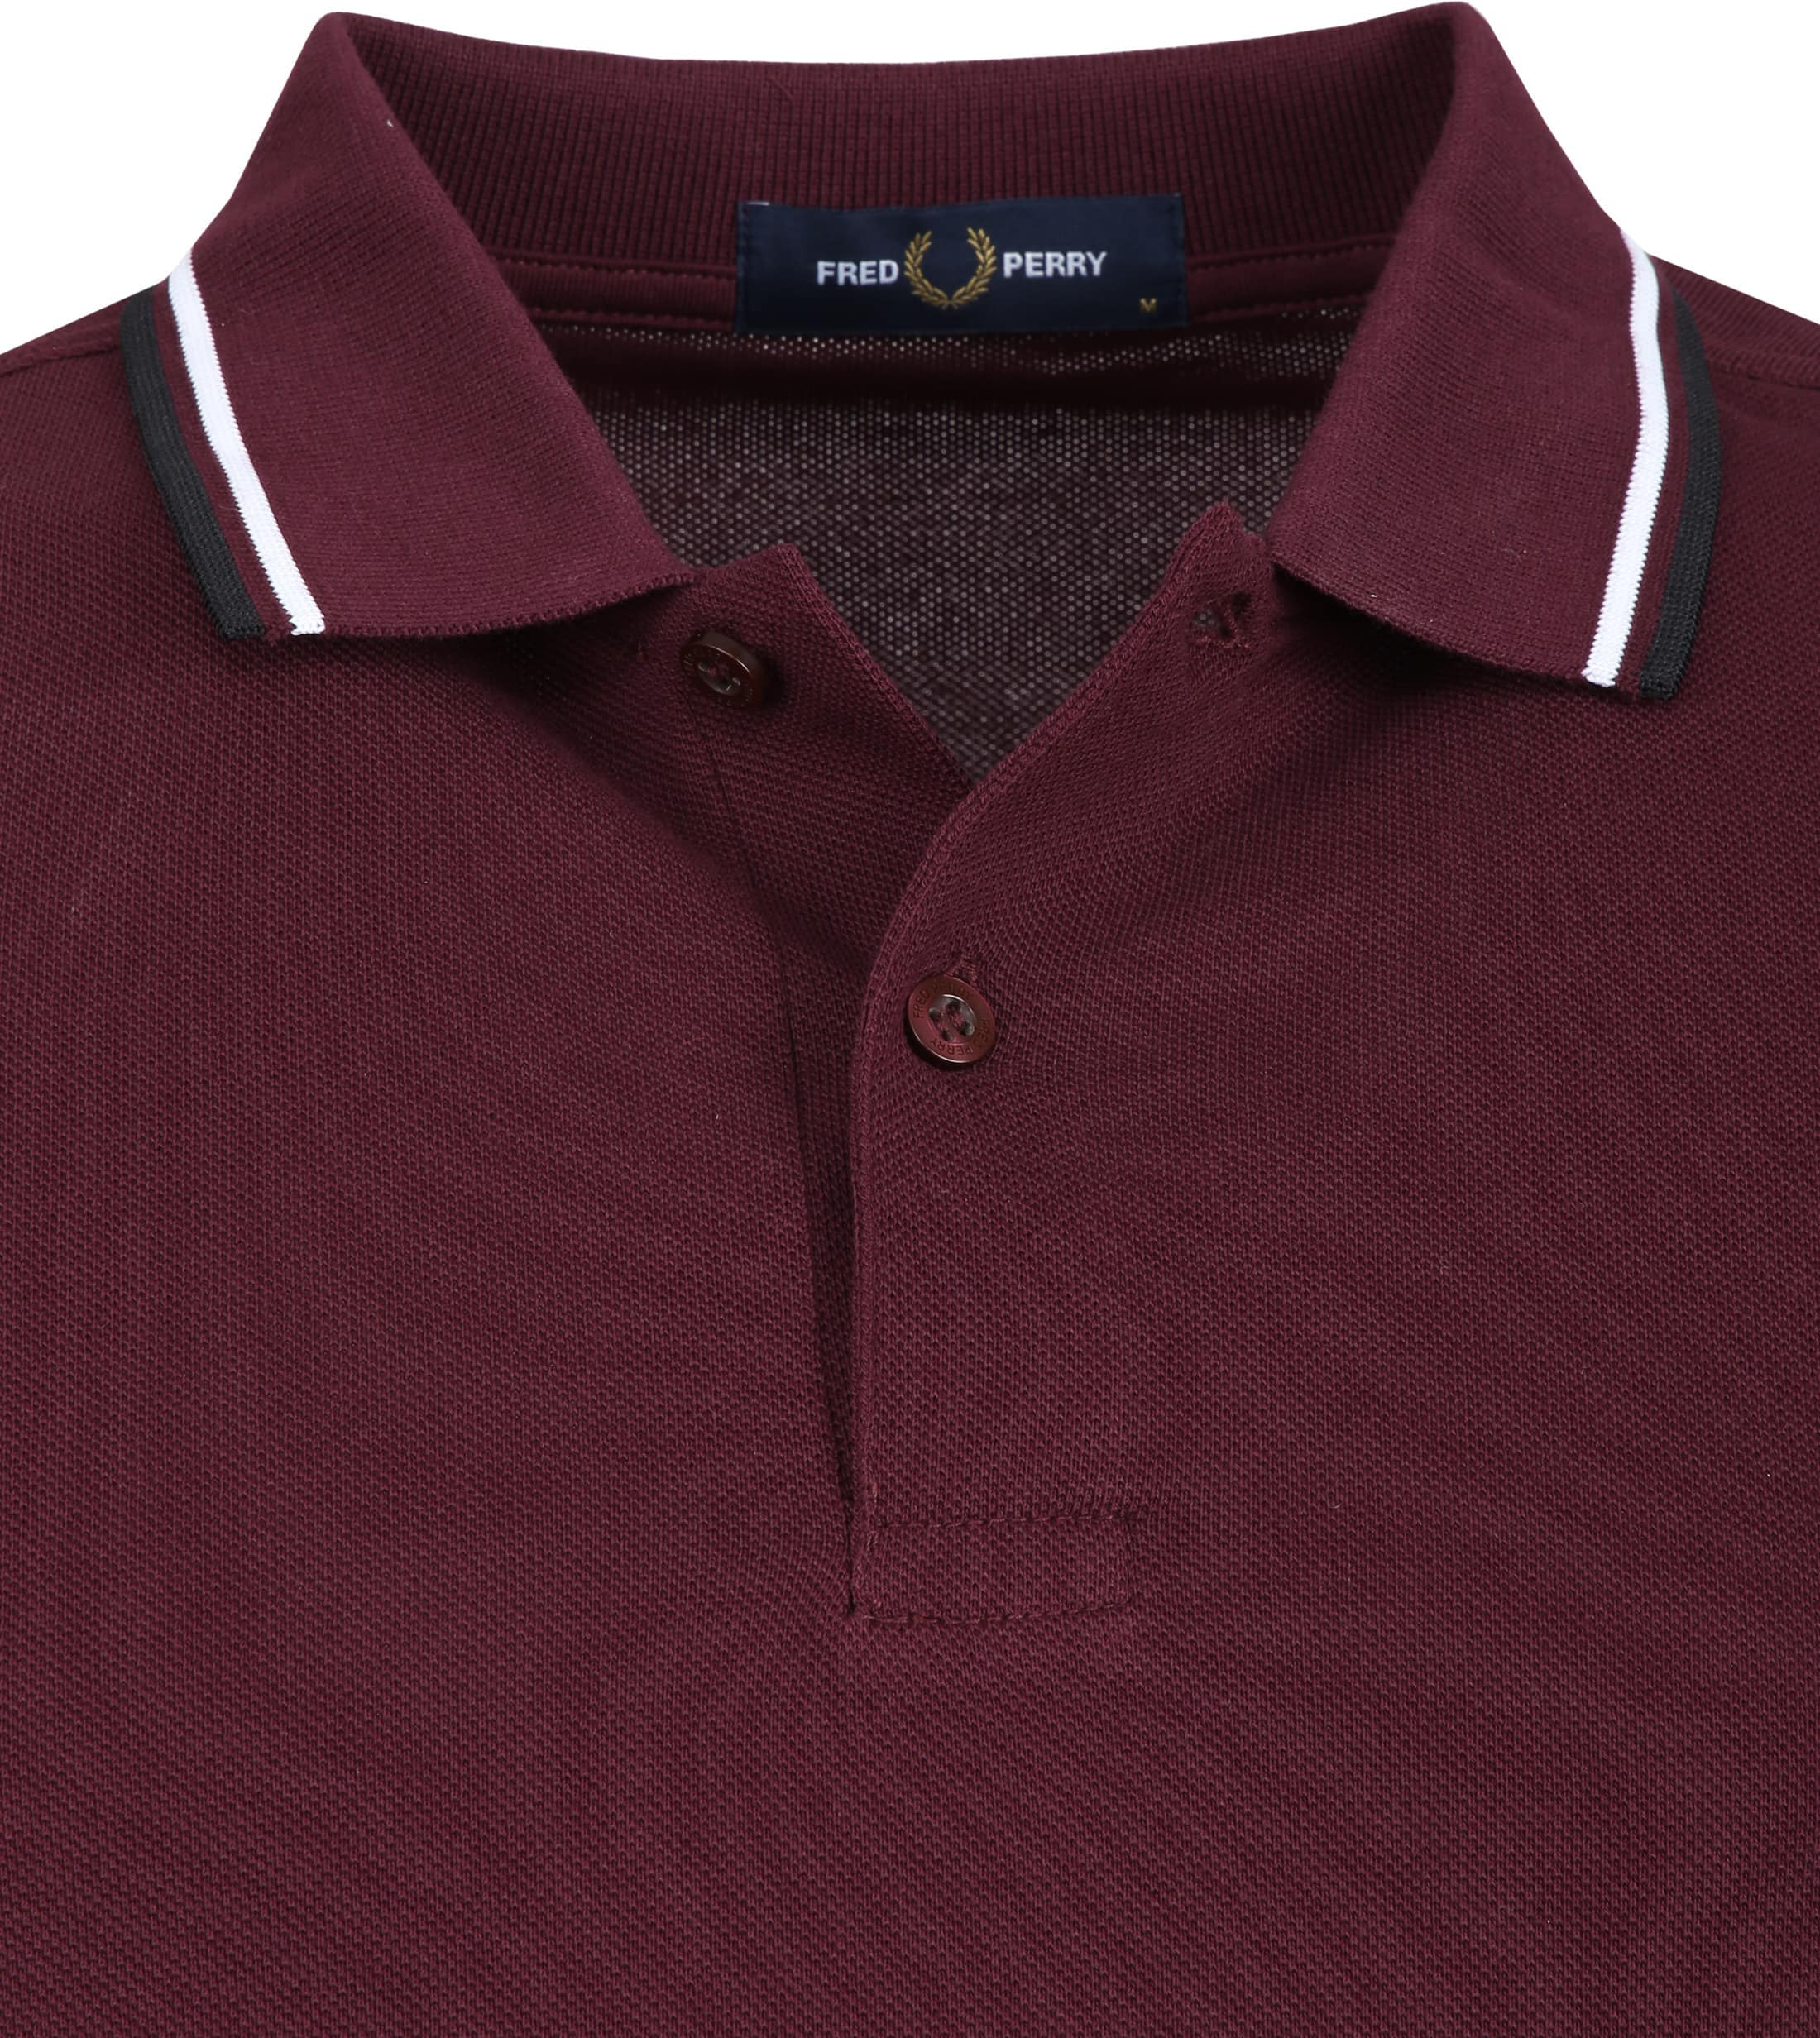 Fred Perry Poloshirt Bordeaux I74 photo 1